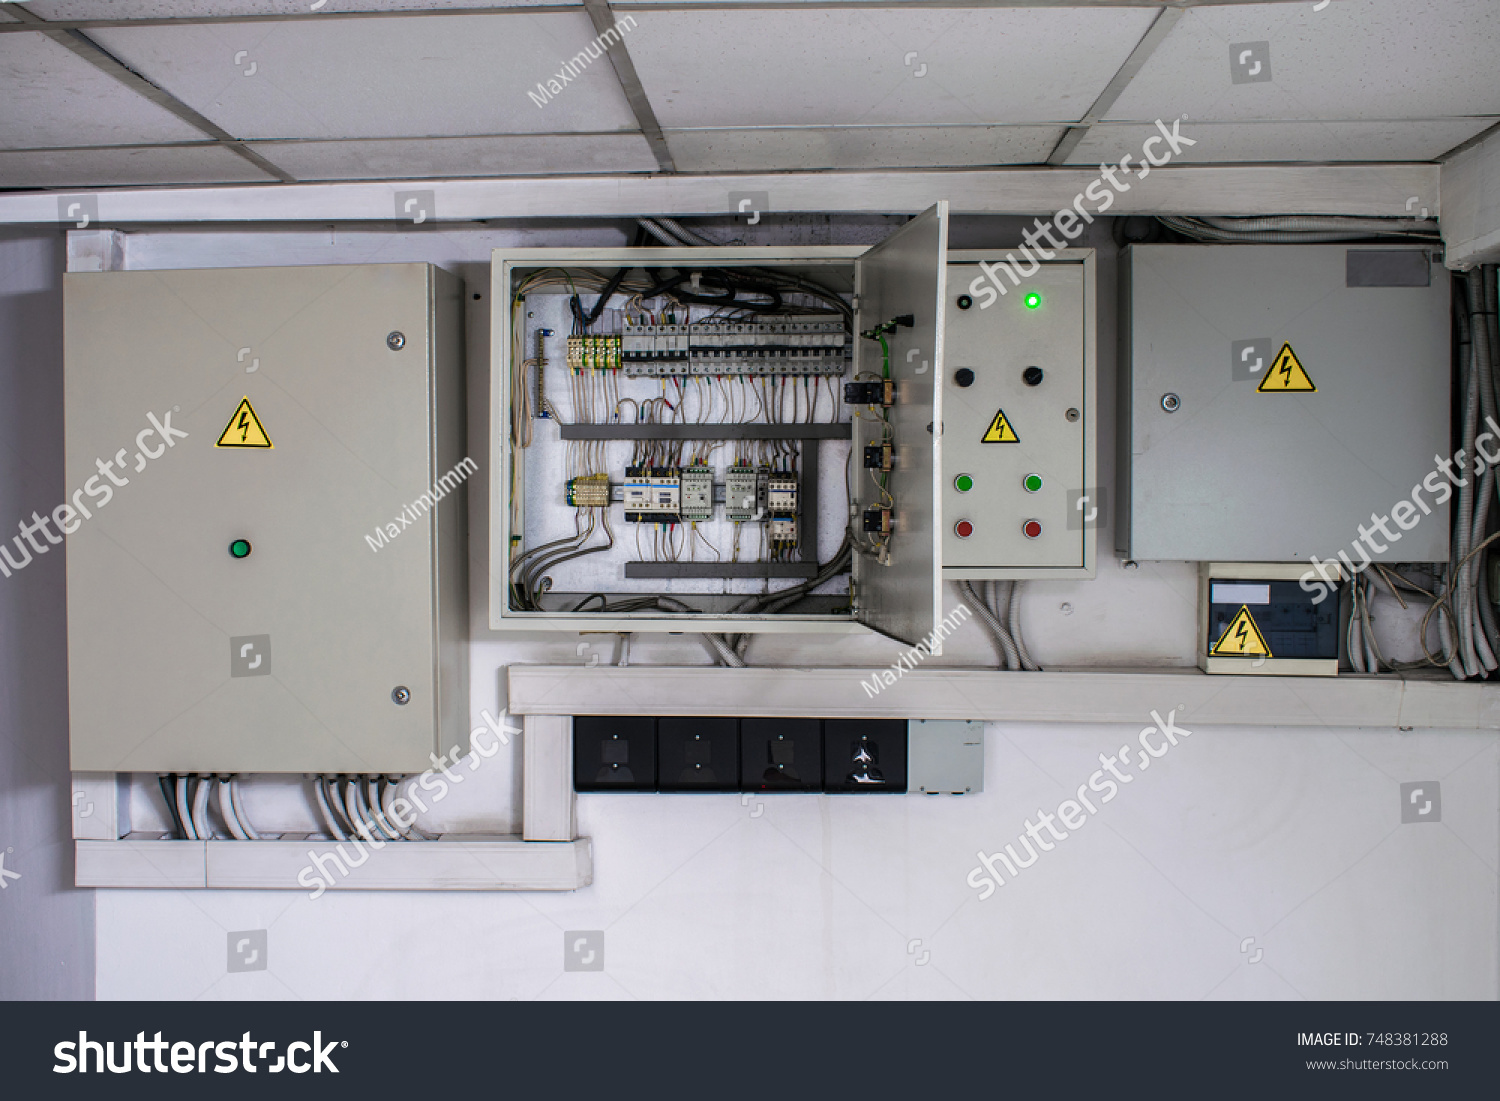 Several Electrical Boxes On Control Panel Stock Photo 748381288 ...